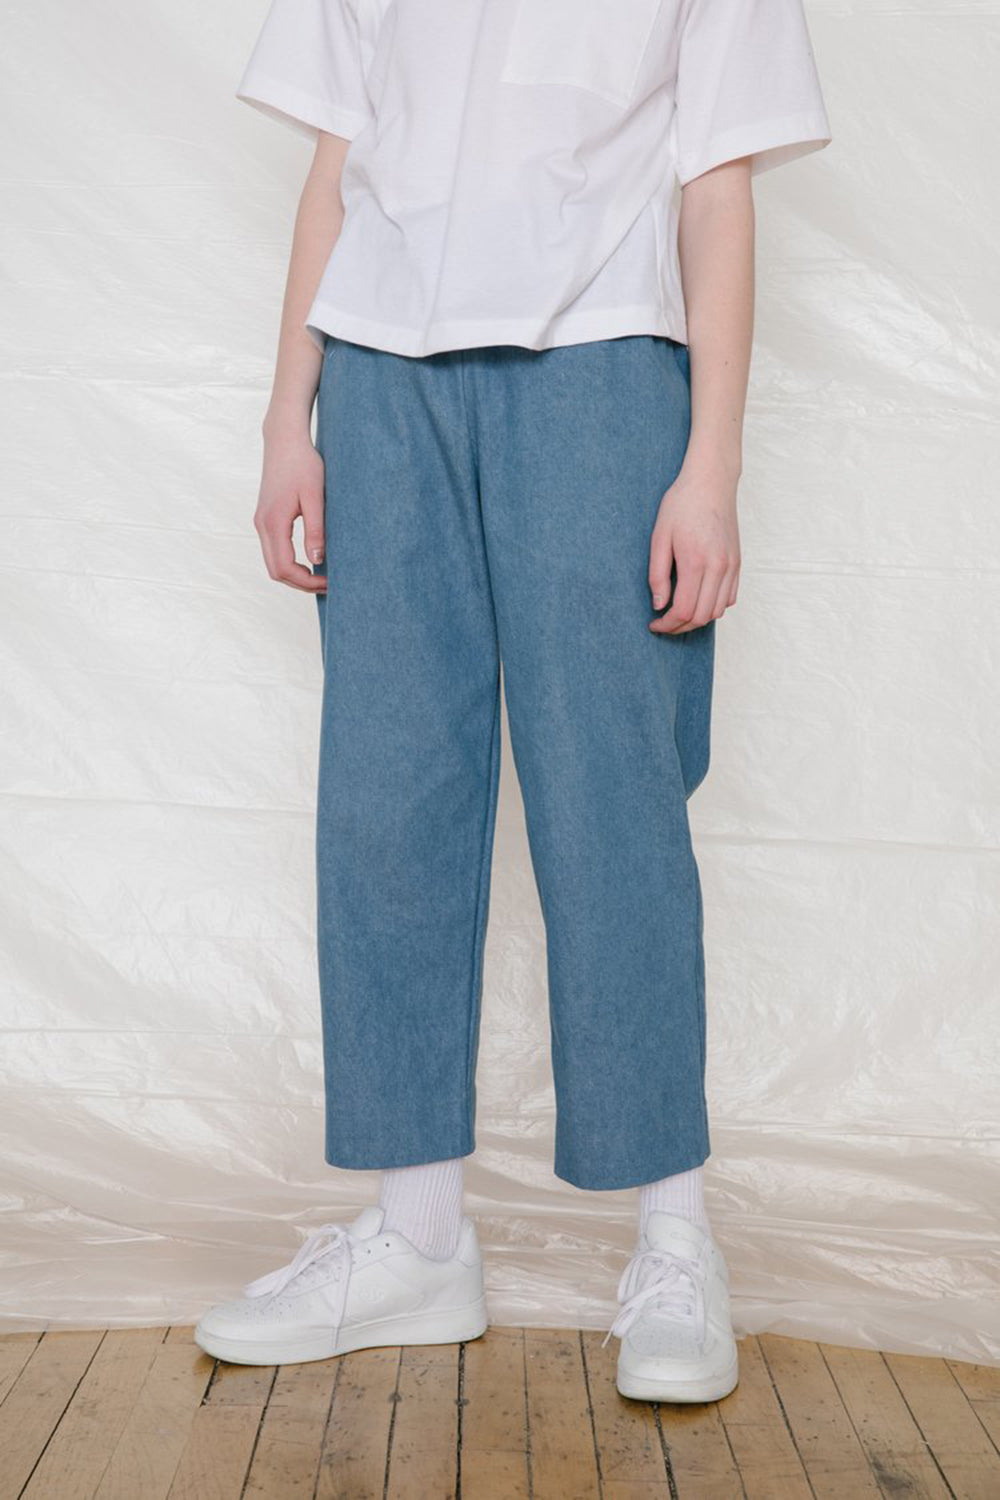 Slack Pants Blue Denim